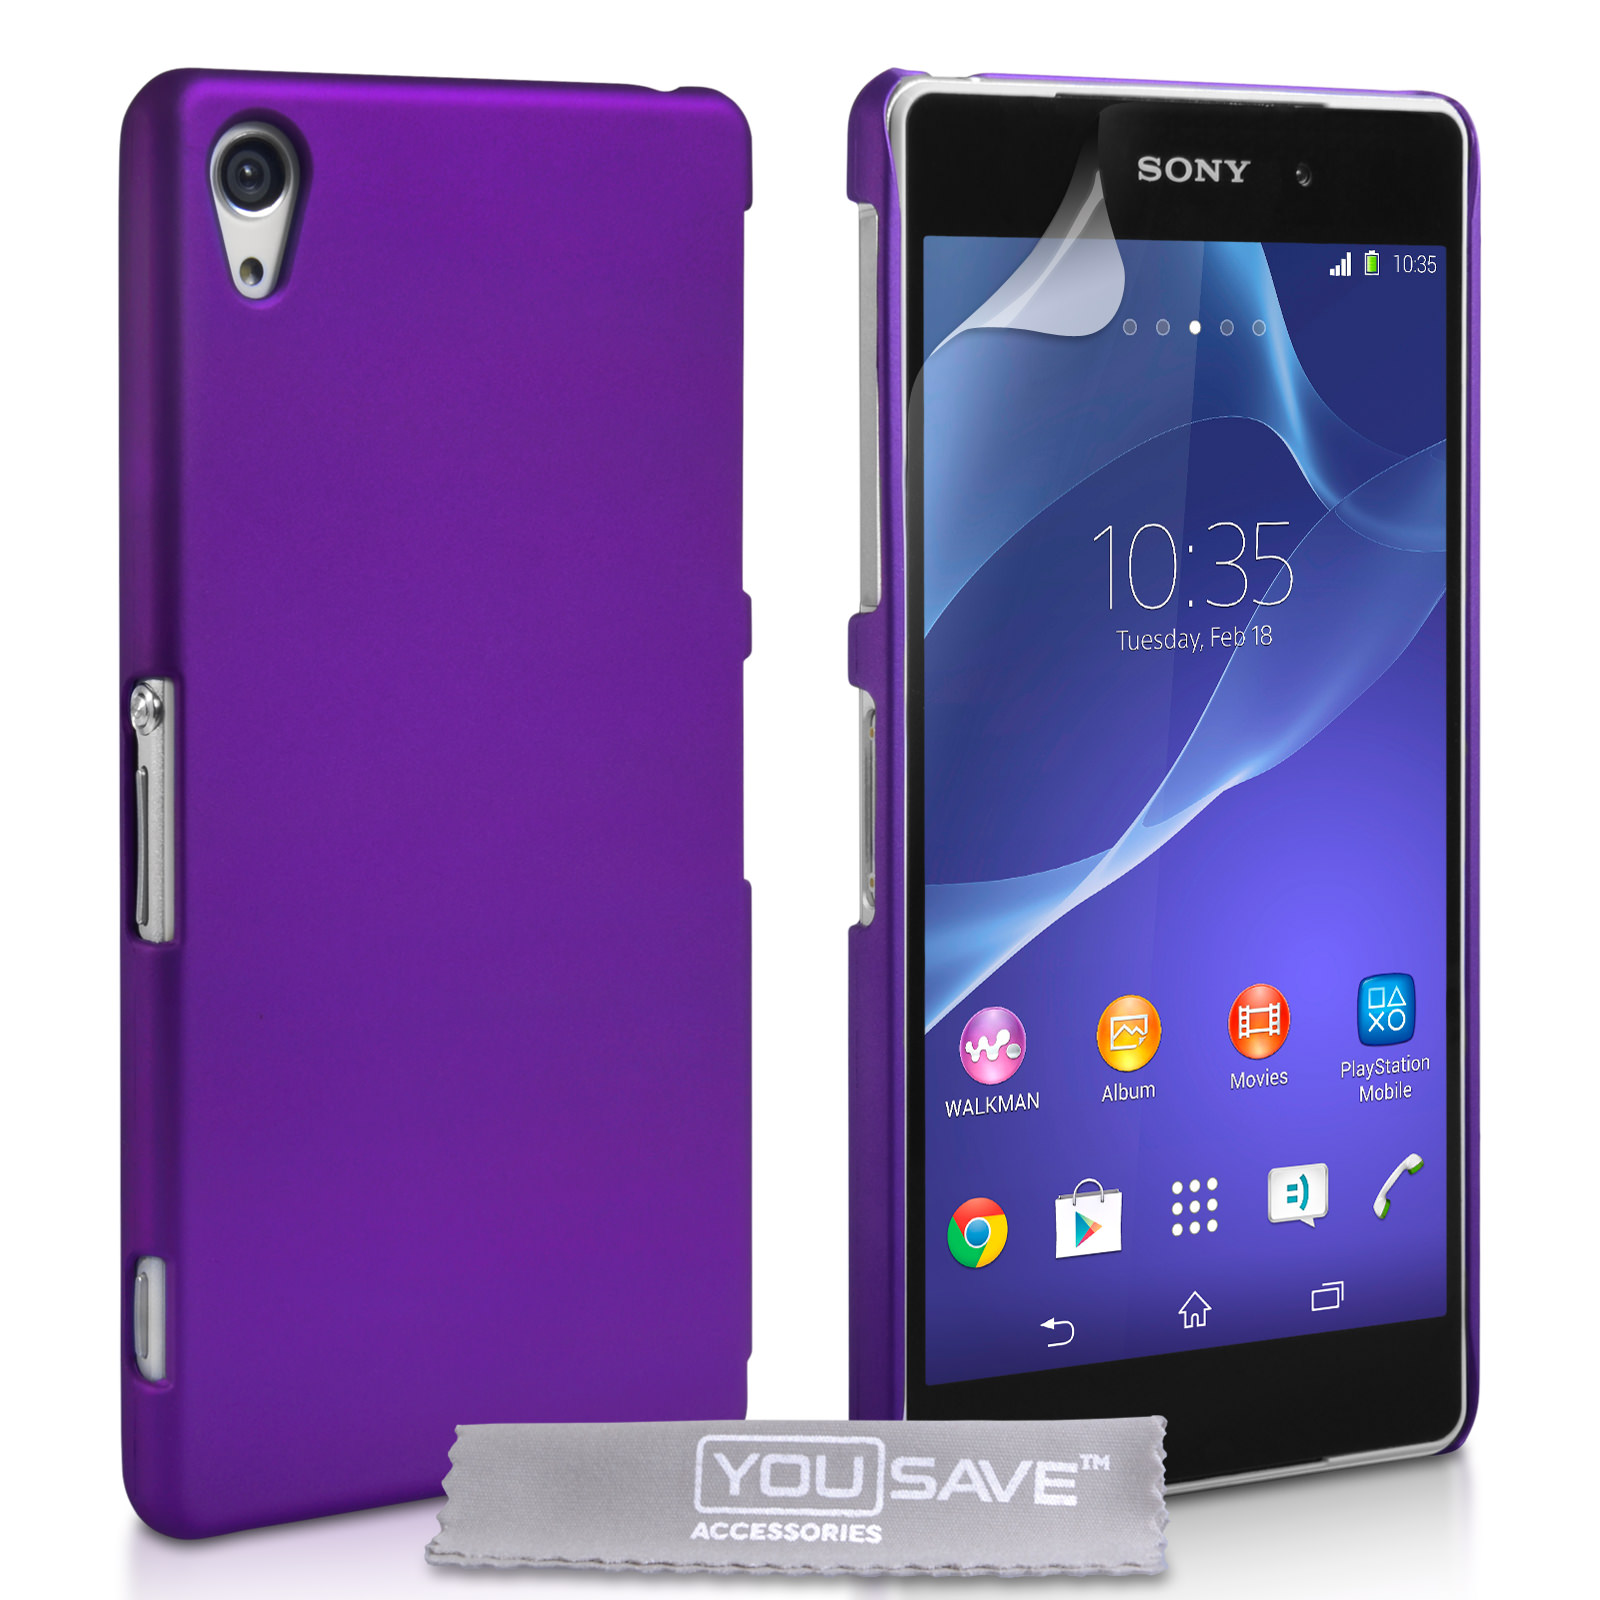 YouSave Accessories Sony Xperia Z2 Hard Hybrid Case - Purple